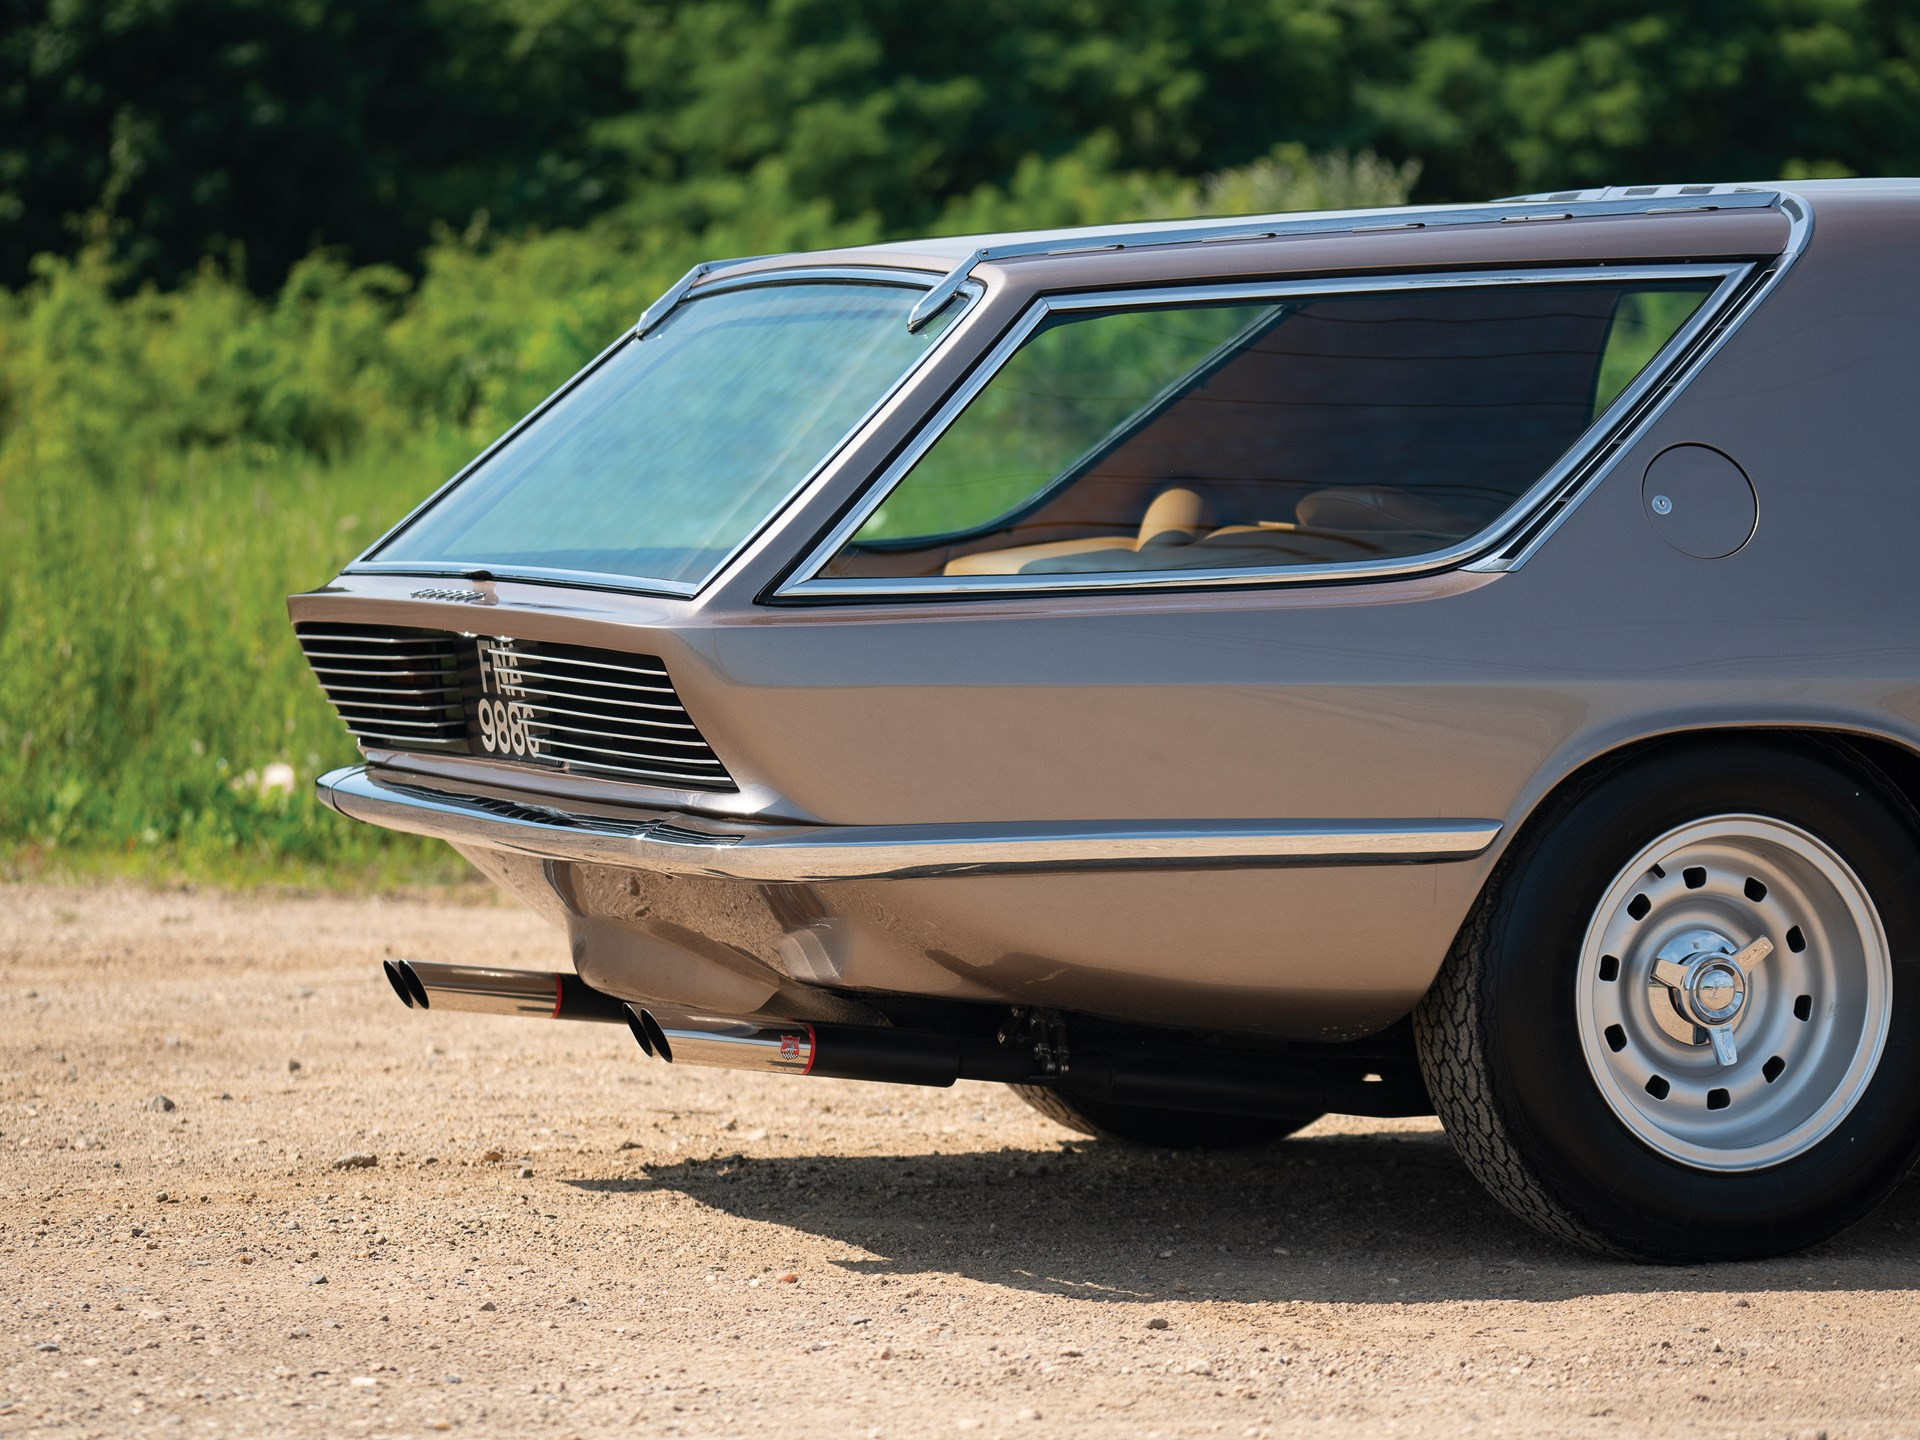 1965 Ferrari 330 GT 2+2 Shooting Brake by Vignale